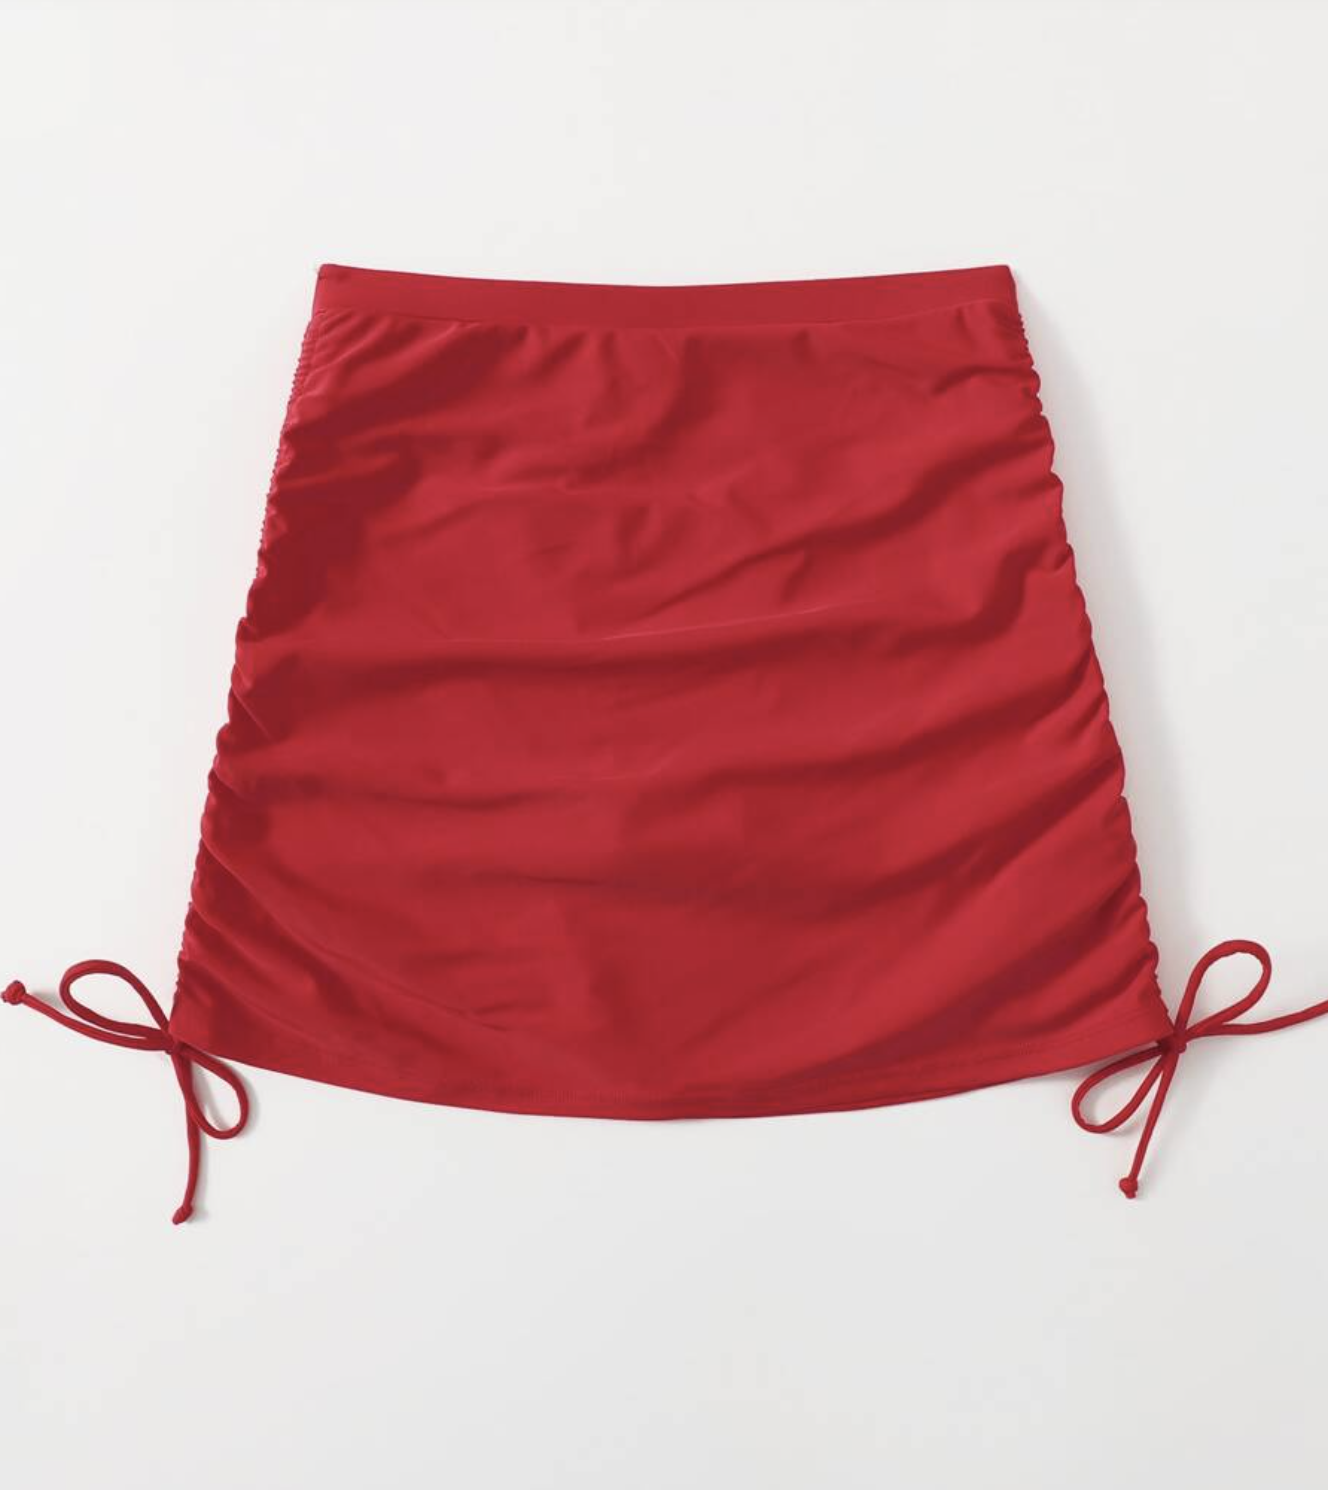 Image of Stormy Skirt